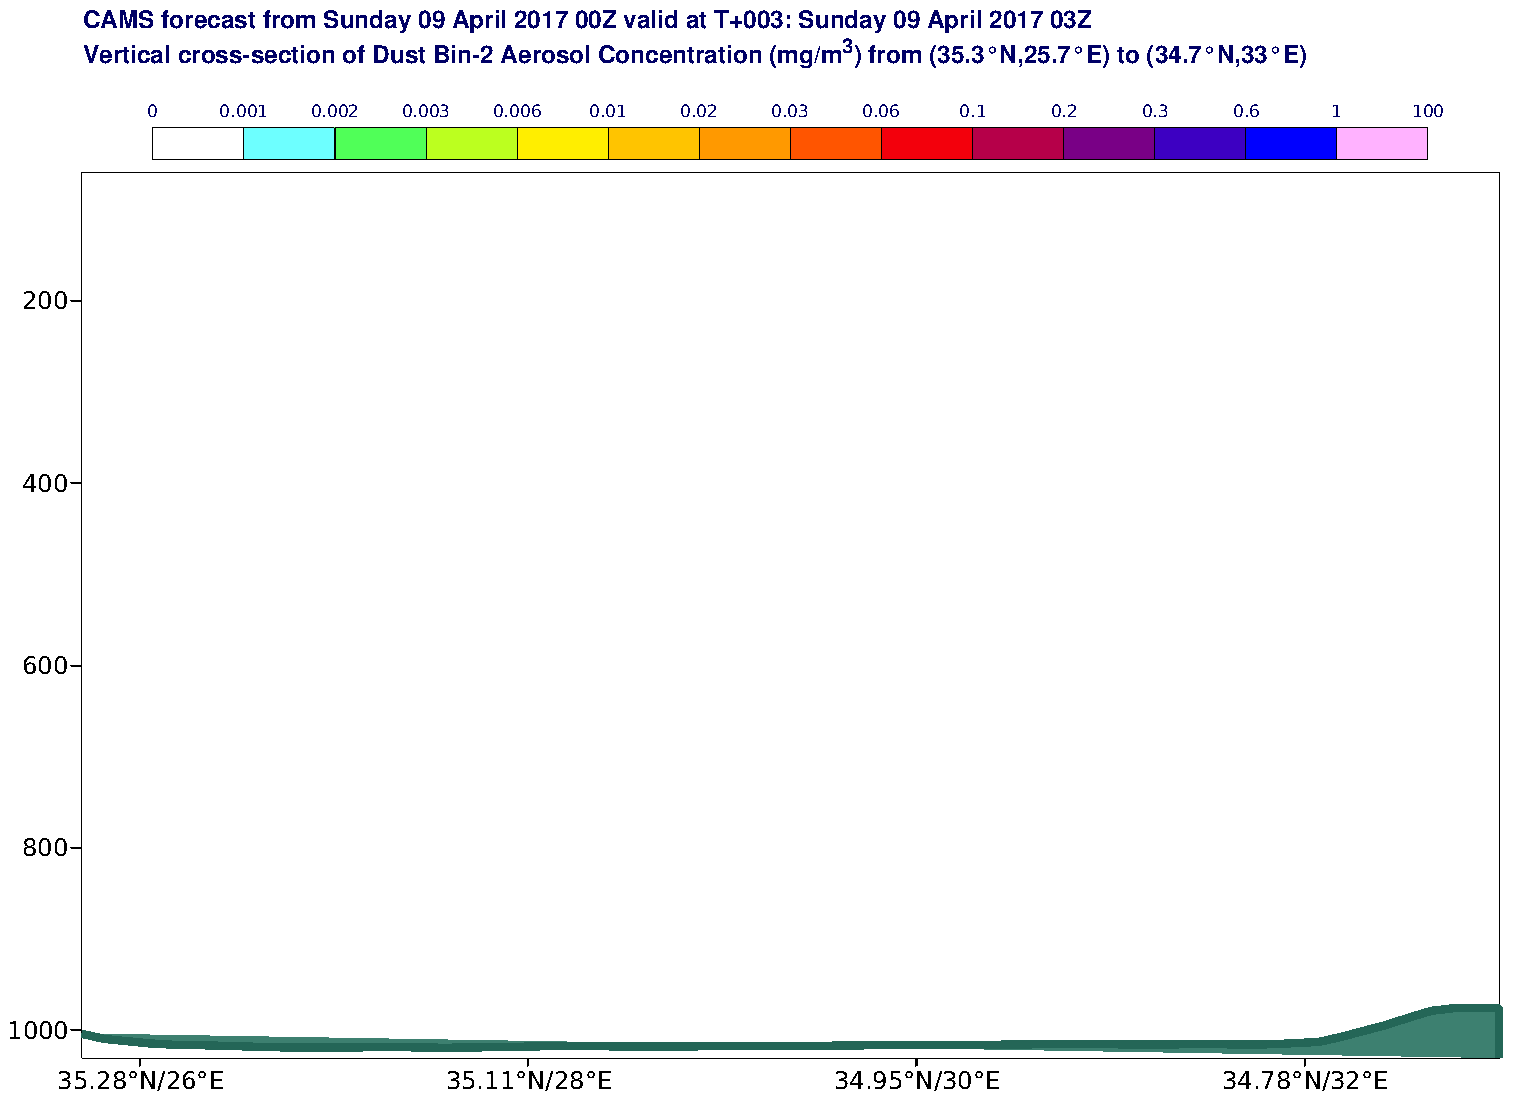 Vertical cross-section of Dust Bin-2 Aerosol Concentration (mg/m3) valid at T3 - 2017-04-09 03:00